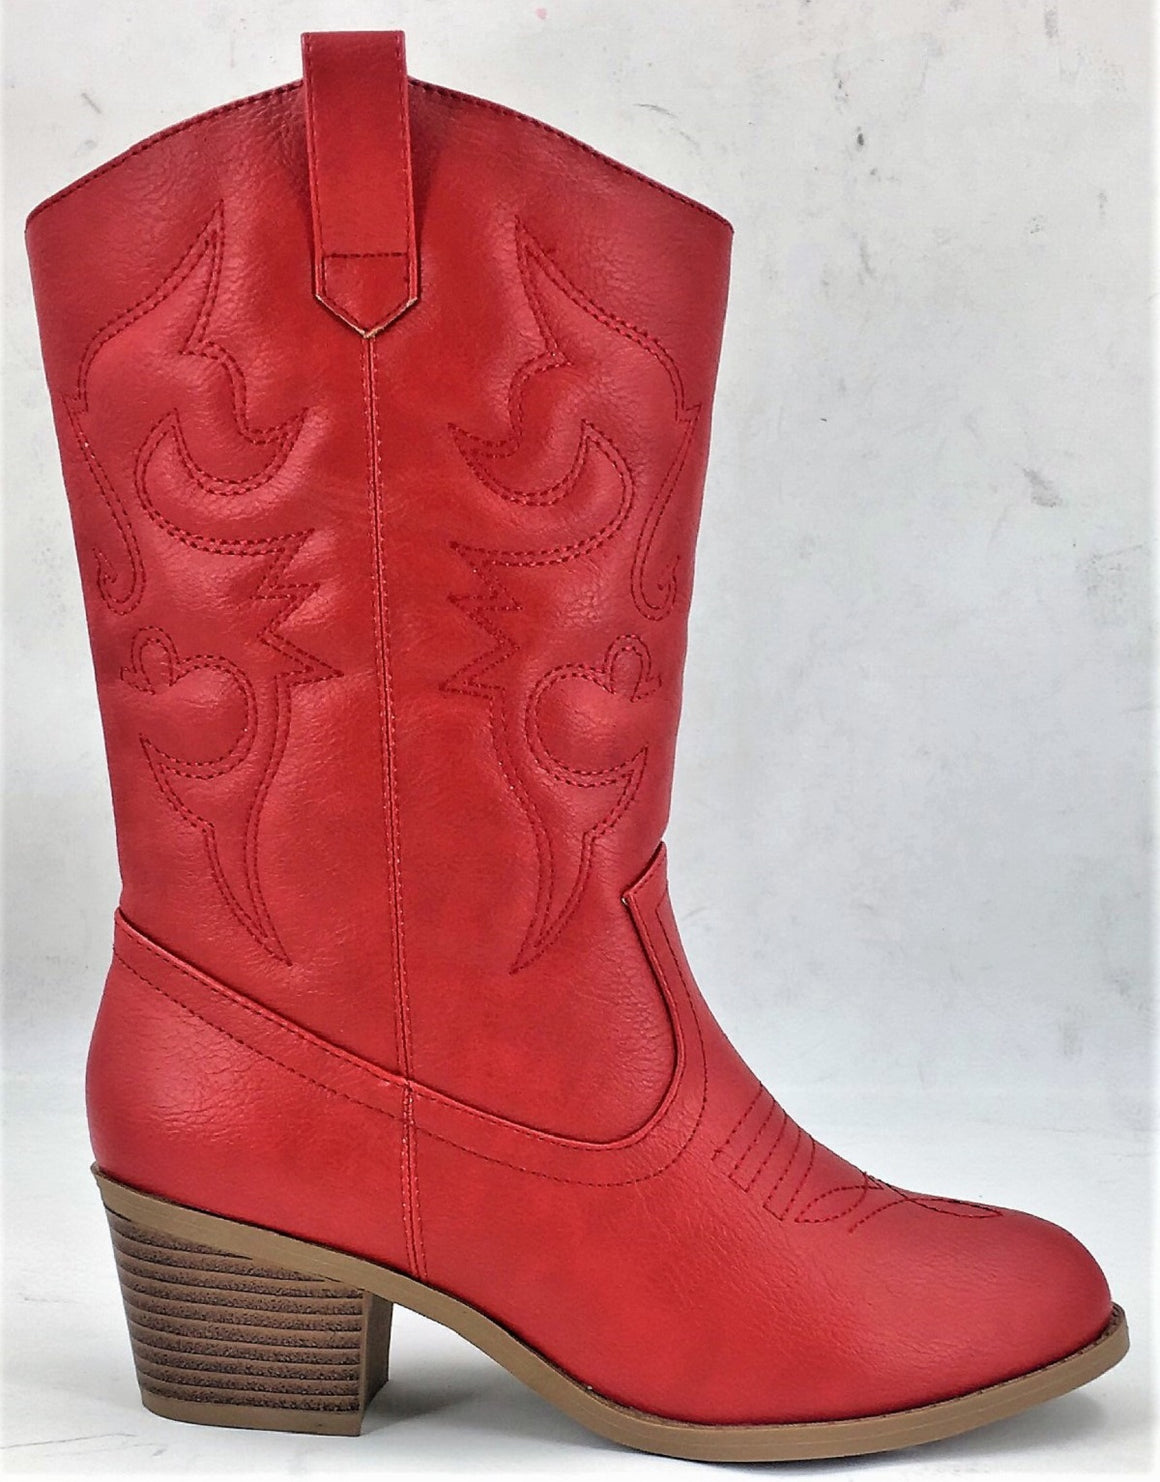 7fbe8088131 Boots Page 3 - shoeclub21